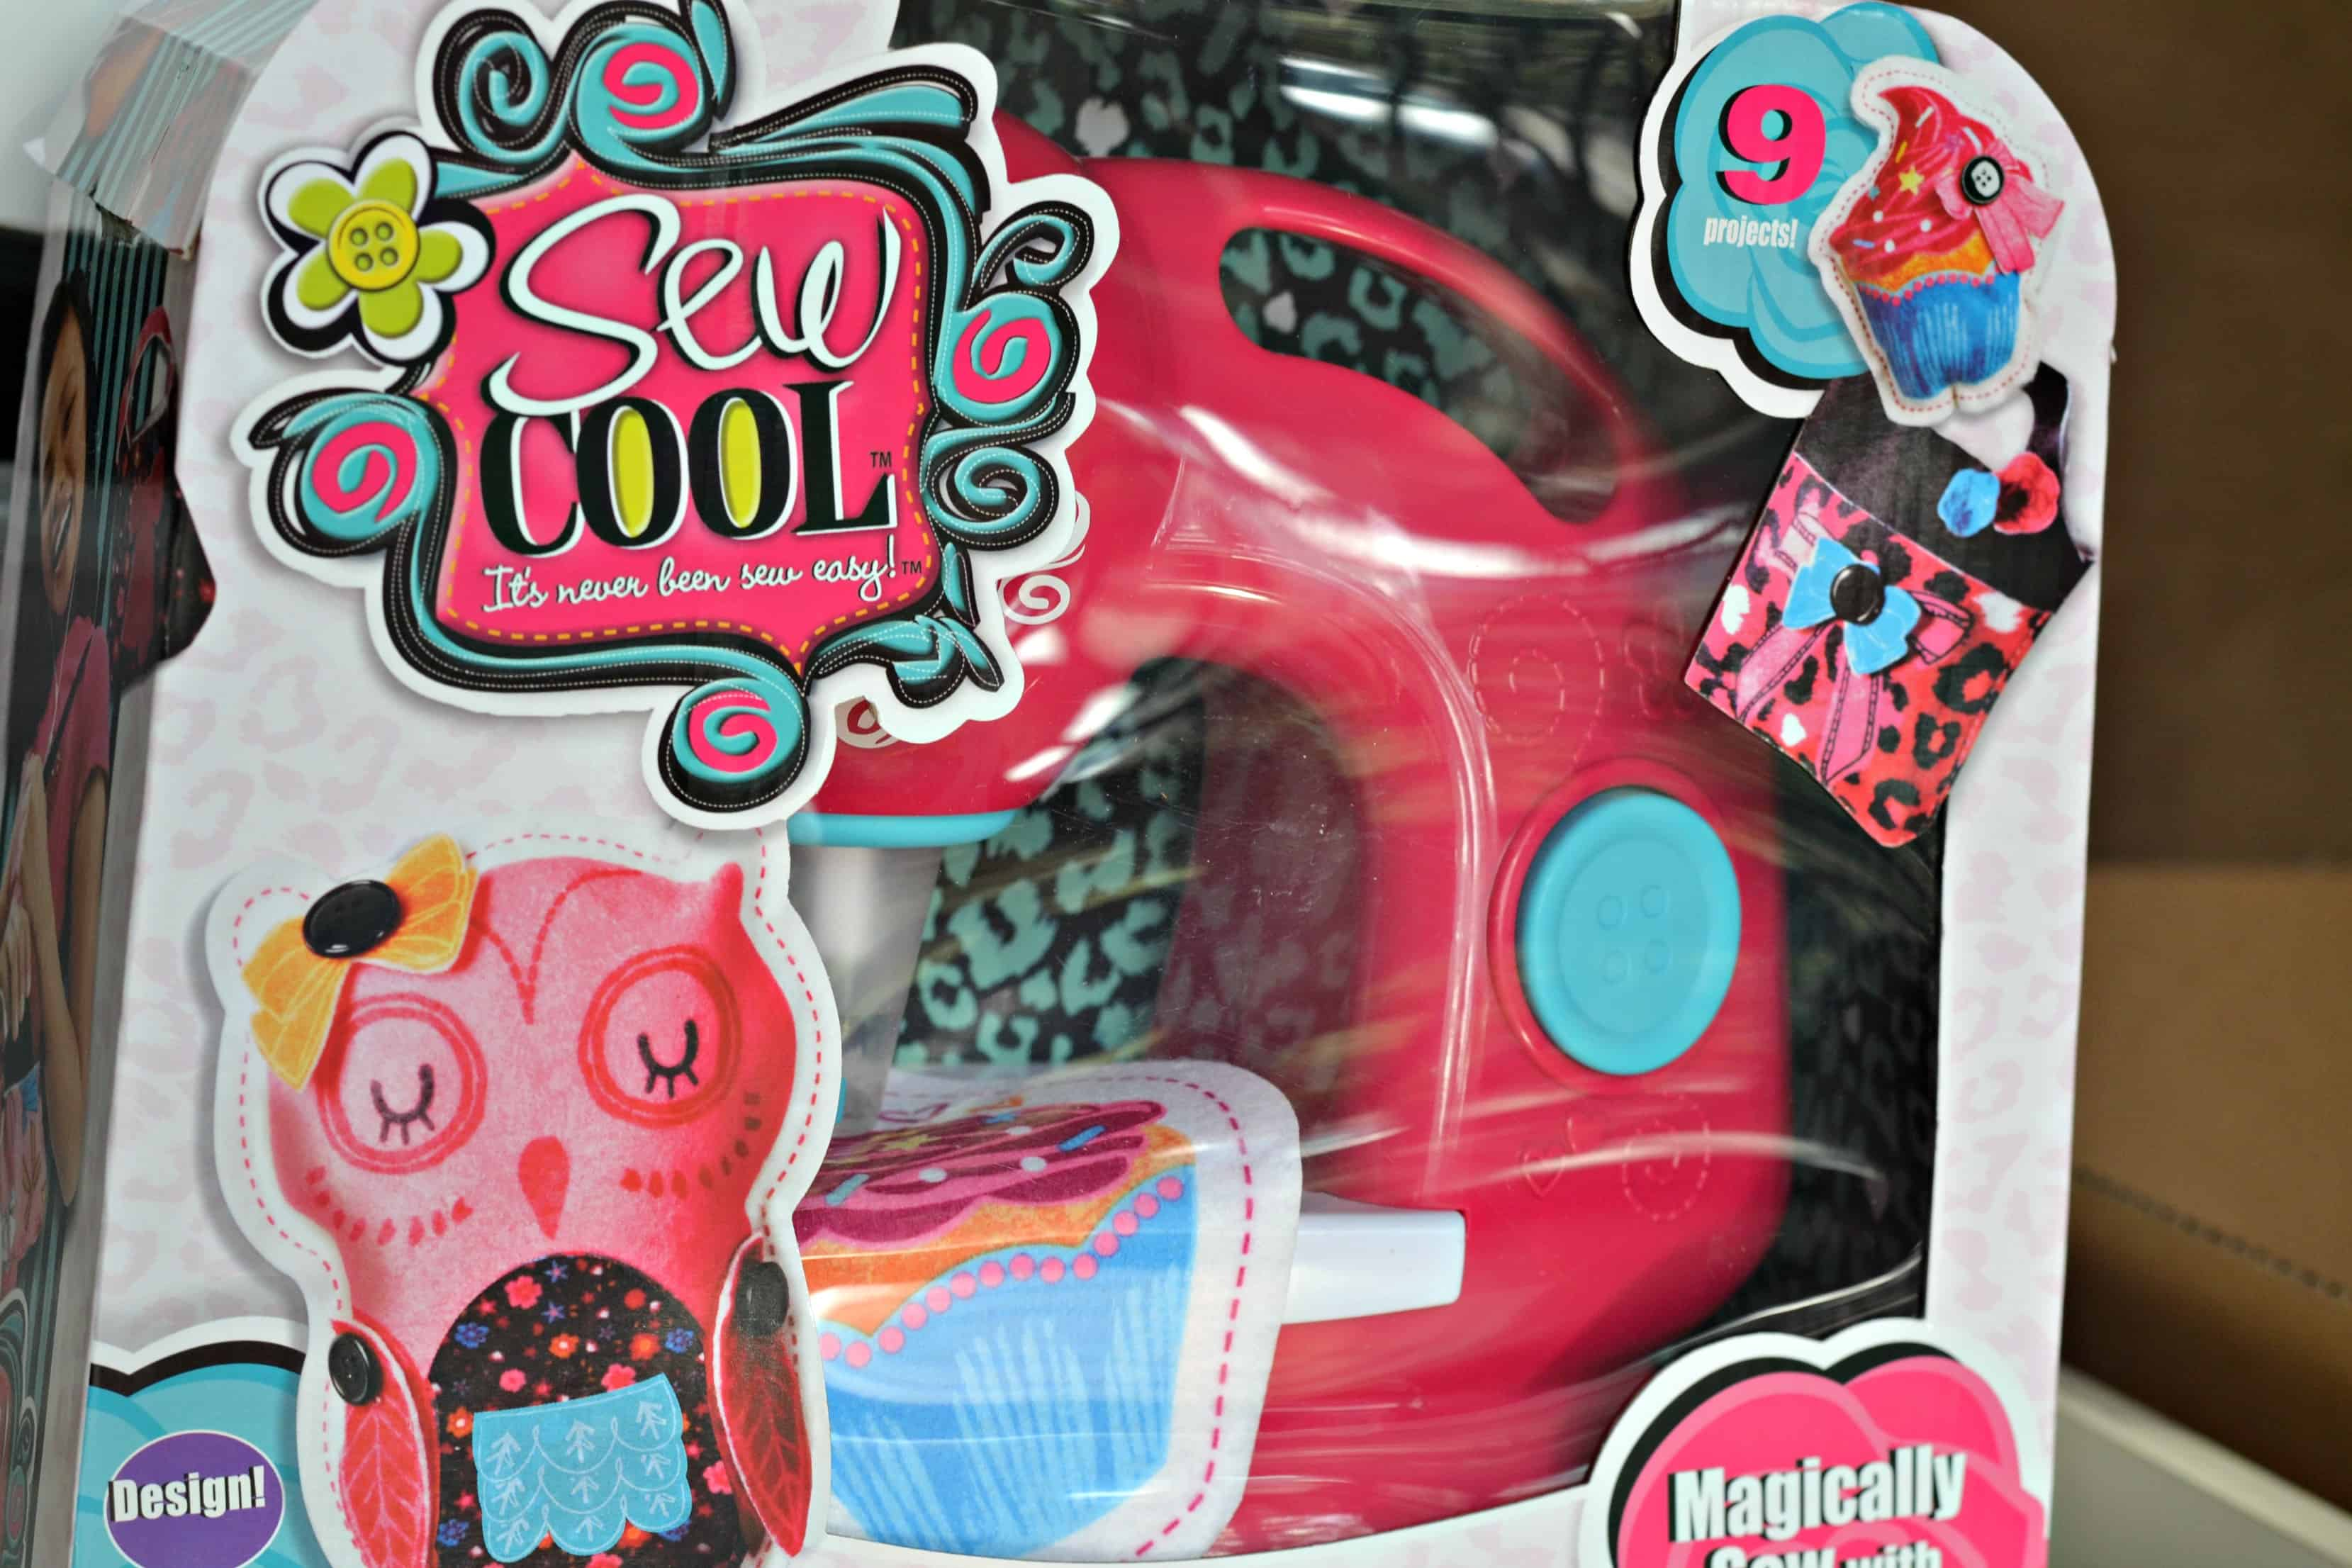 Top Toy Picks Chosen By Kids 4 Hats and Frugal